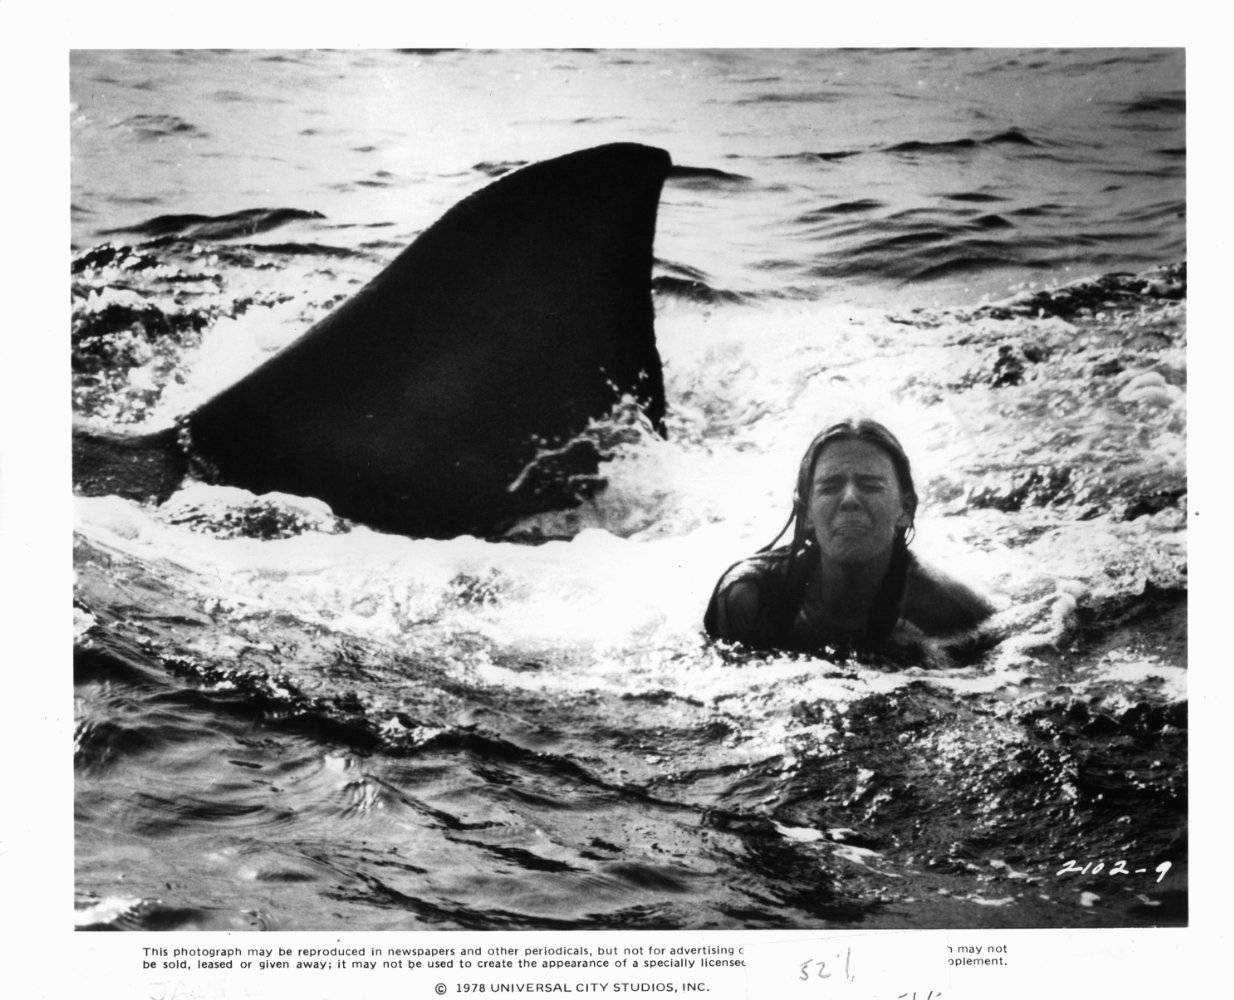 jaws-2-le-film-qui-requinque